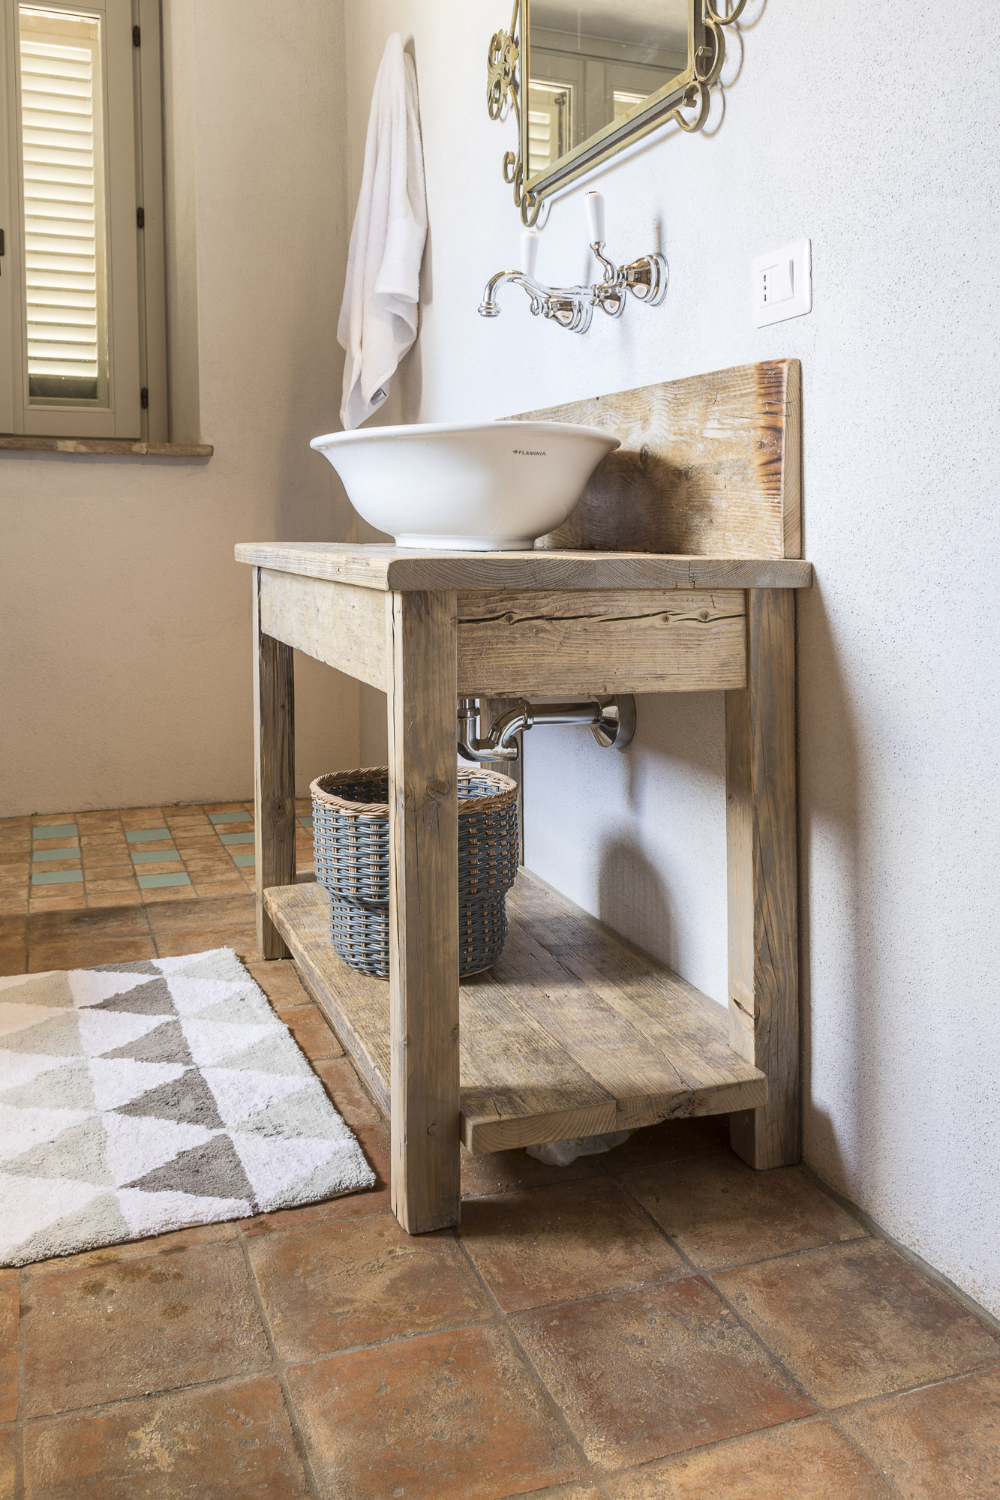 Wooden Bathroom Sink Stand Anticovecchio Wooden Bathroom Bathroom Bathroom Stand